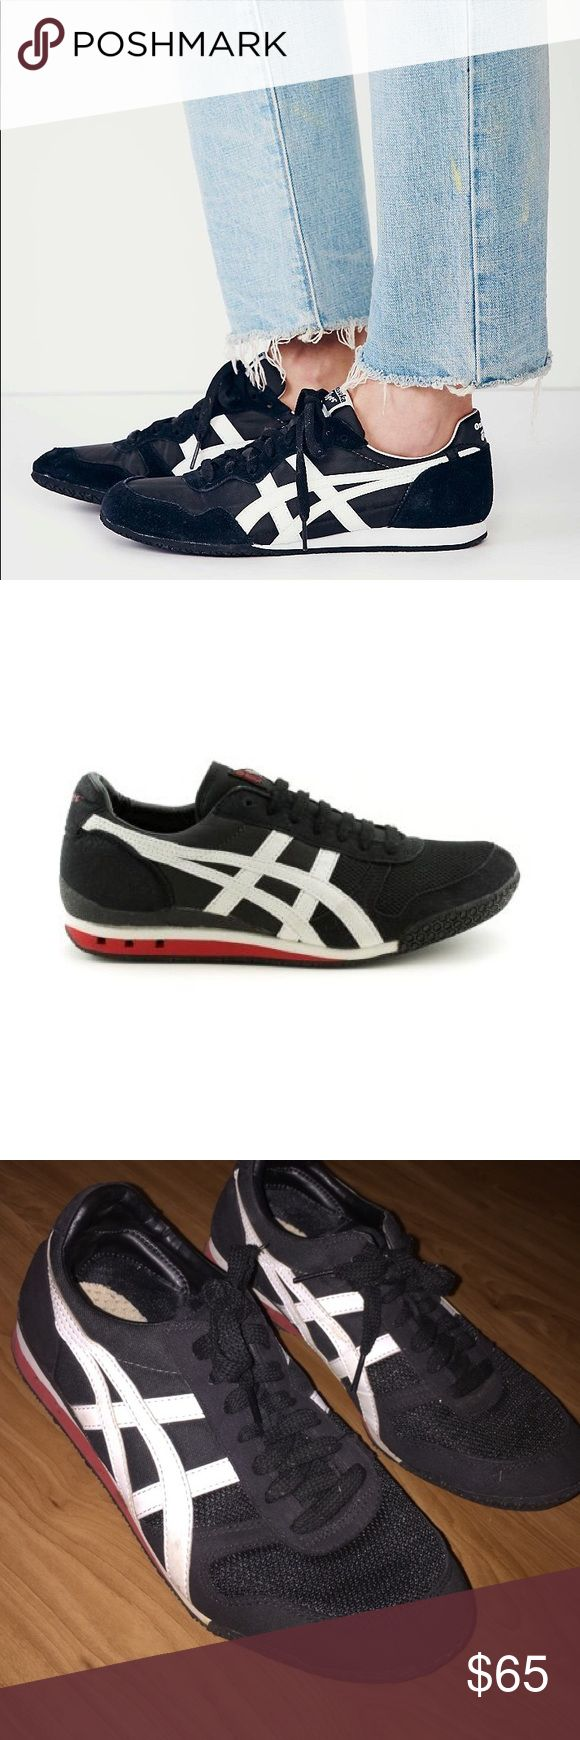 """tiger onitsuka womens black Right on pace with this season's retro running looks, Onitsuka Tiger, the heritage brand behind ASICS, pays tribute to its own Seventies-era sneaker styles with the """"Serrano,"""" a low-profile, lightweight trainer shown here with high-contrast """"tiger stripes."""" Available Colors: Black, Blue, Gold Nylon/suede uppers with seven-eyelet lacing system Lightly padded heel collar and tongue Rubber outsole EVA midsole Manmade, cushioned footbed size 7 men 9 women Urban…"""